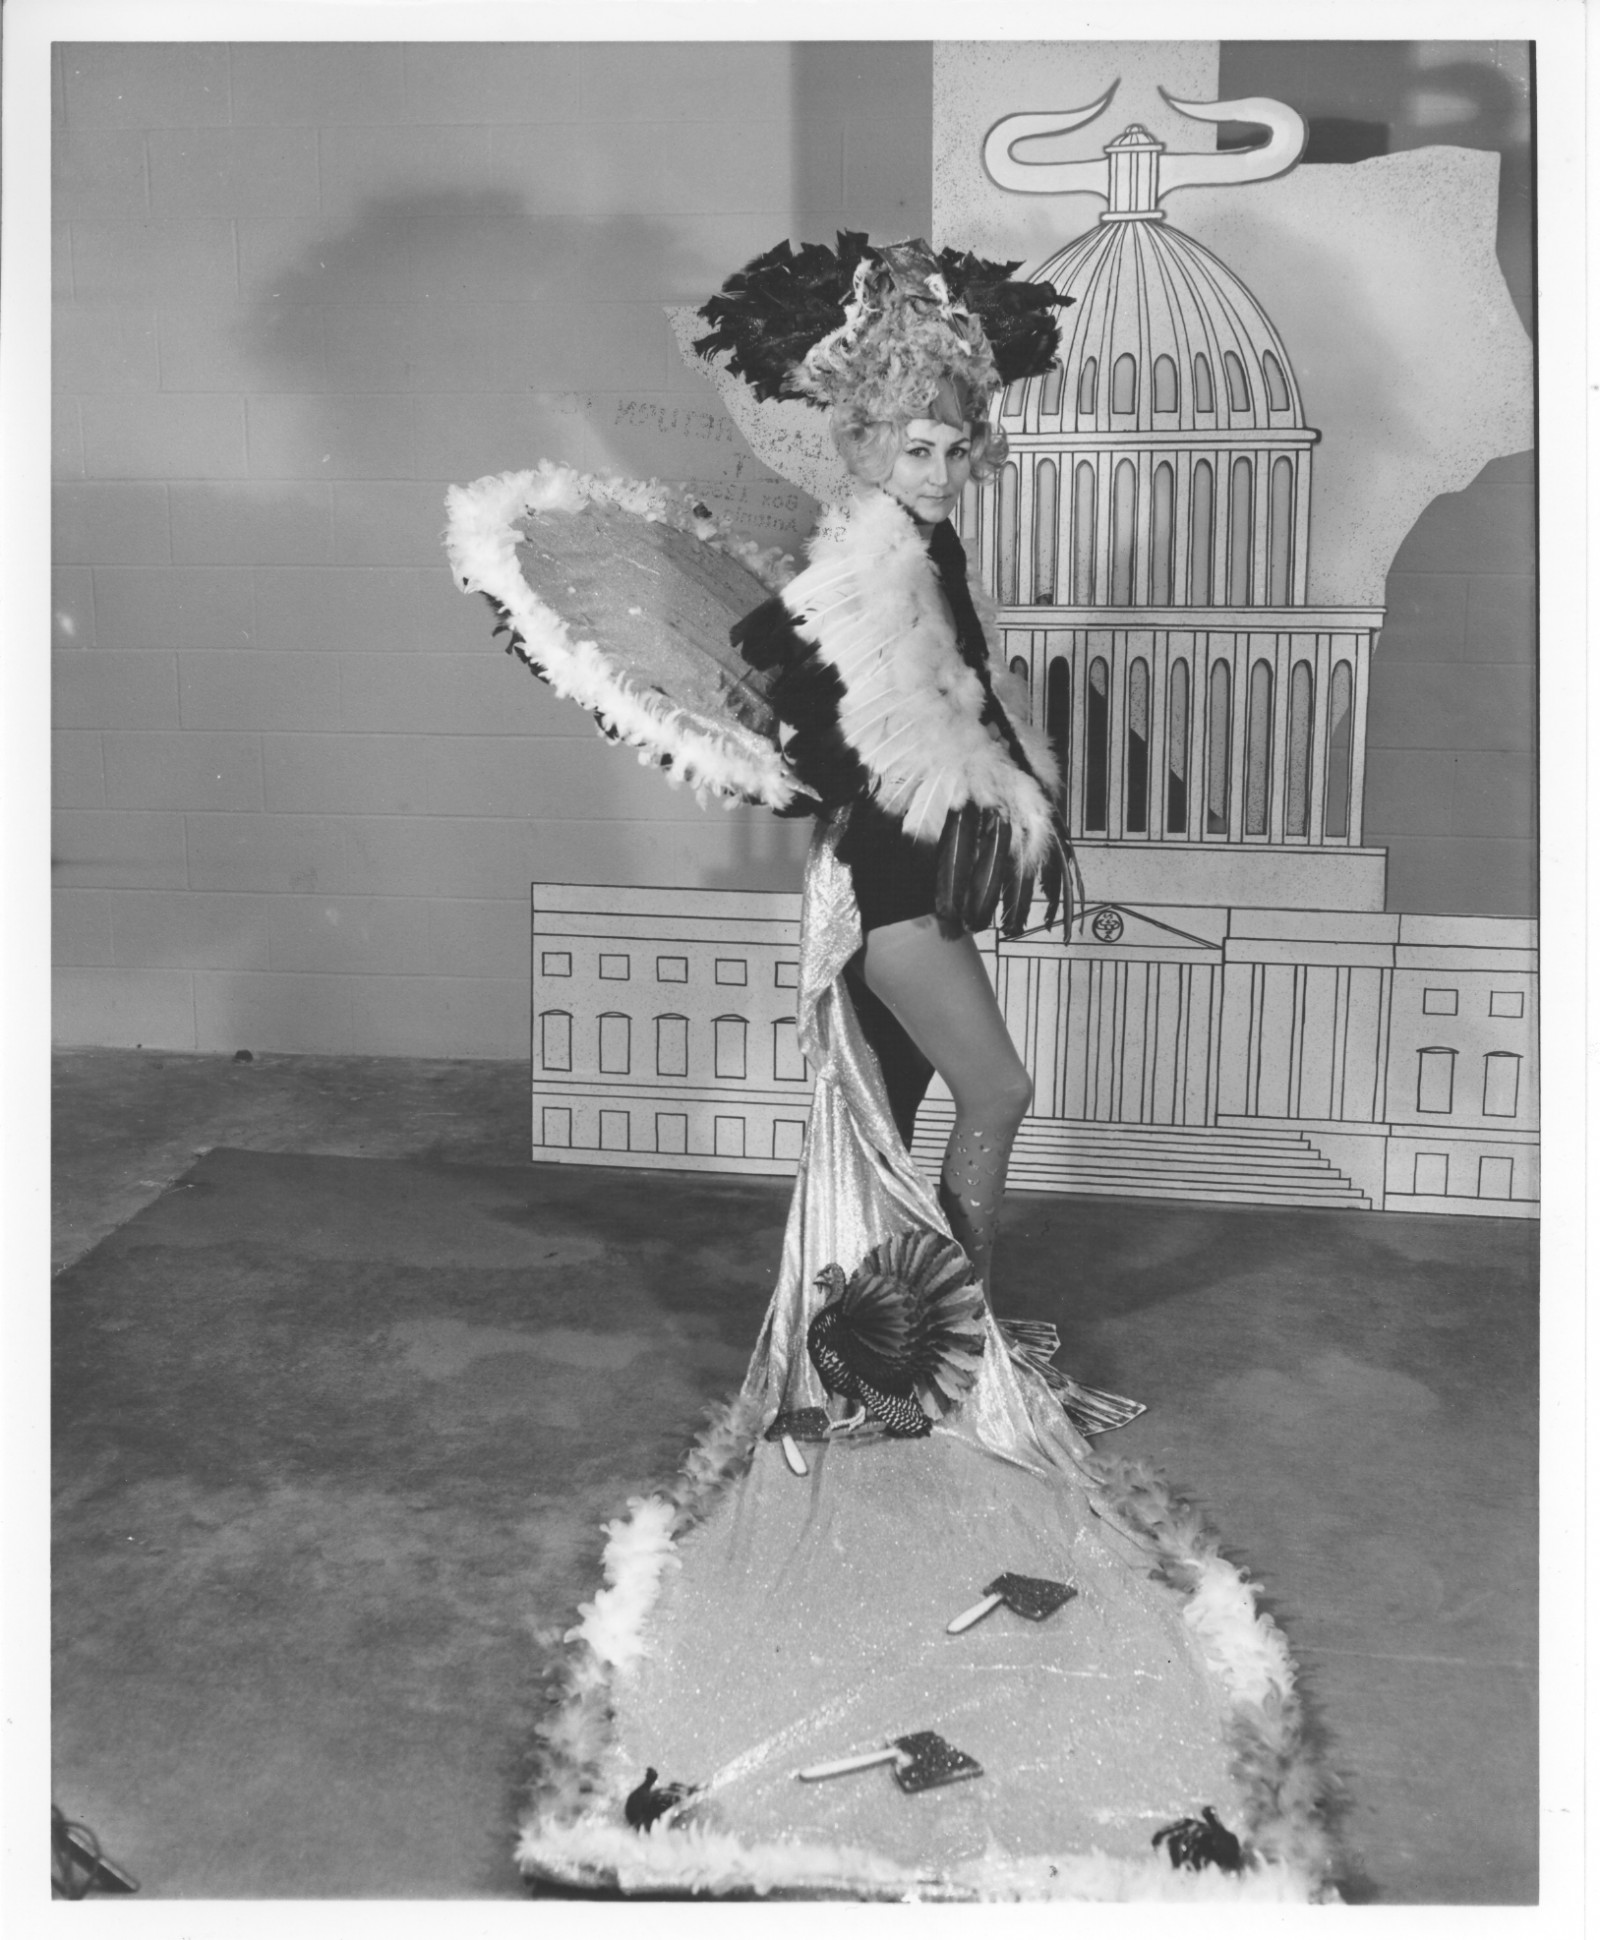 Aubrey Davenport as Duchess of the Turkey Trot, 1965. This costume demonstrates the trains that were common as a part of the costuming in the 1950s and 1960s . Courtesy of The Playhouse and the San Antonio Public Library Texana Collection.